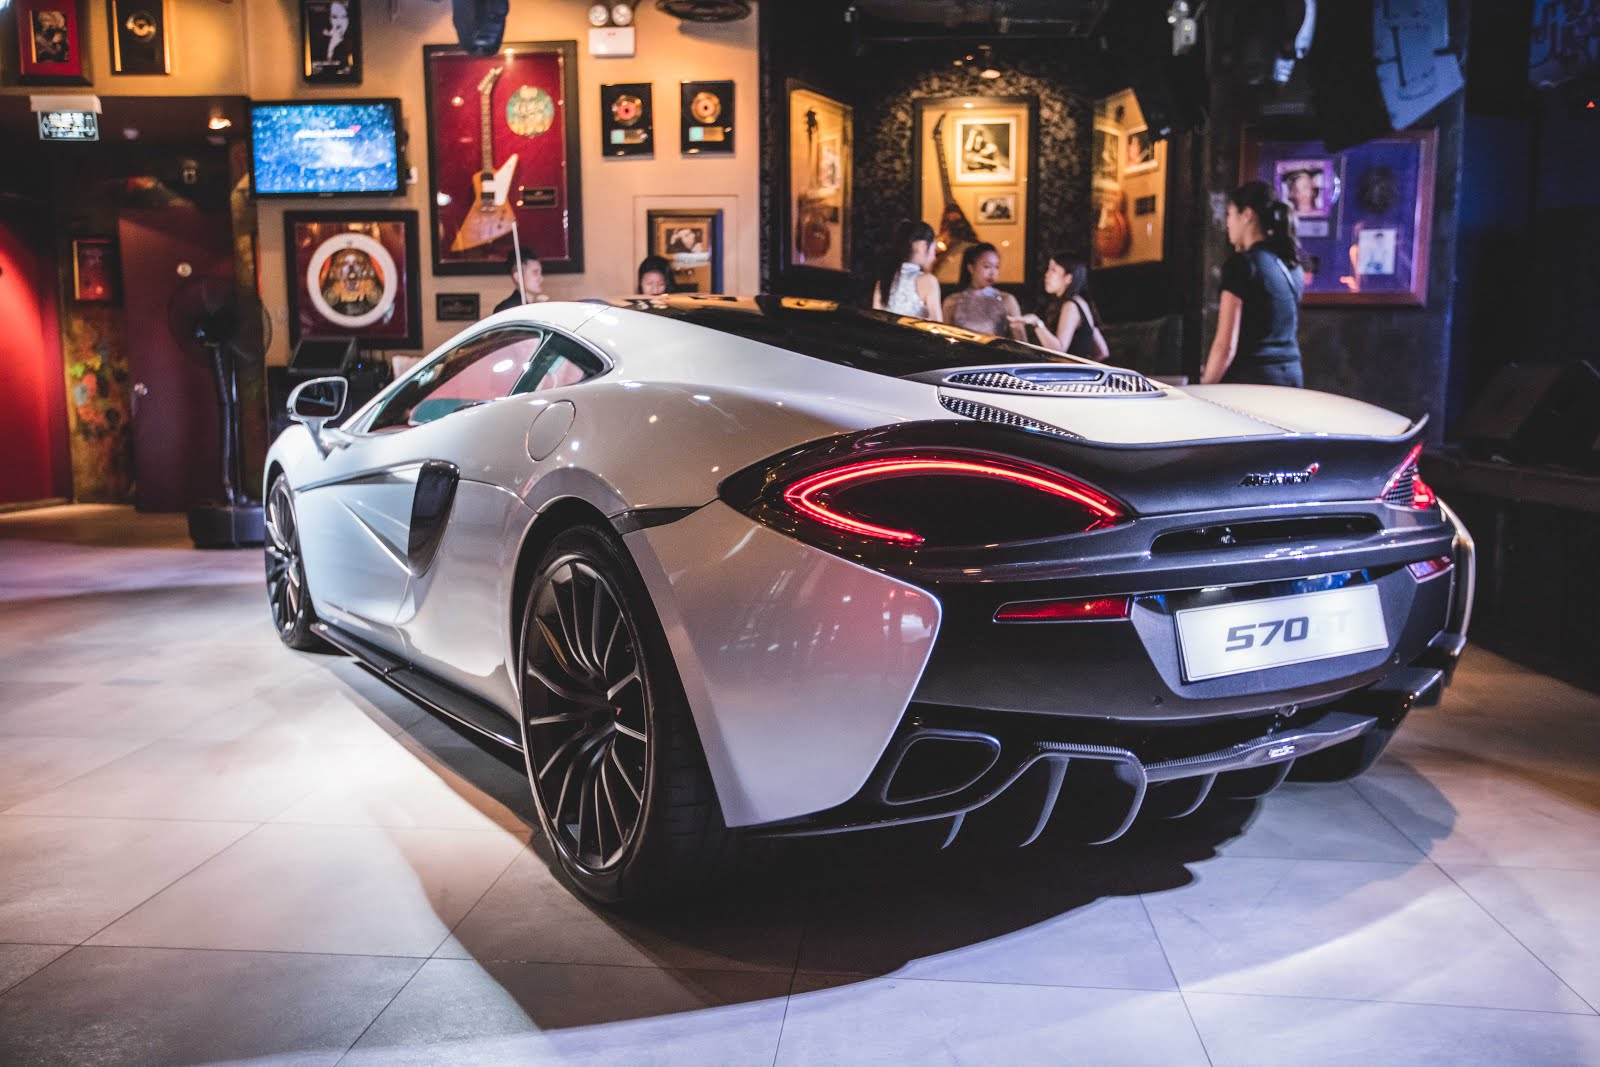 Bon Retain The Performance Of 570S Coupé, McLaren 570GT Has Taken A Step  Further To Enhance A Driving Journey With Increased Levels Of Luxury And  Refinement.